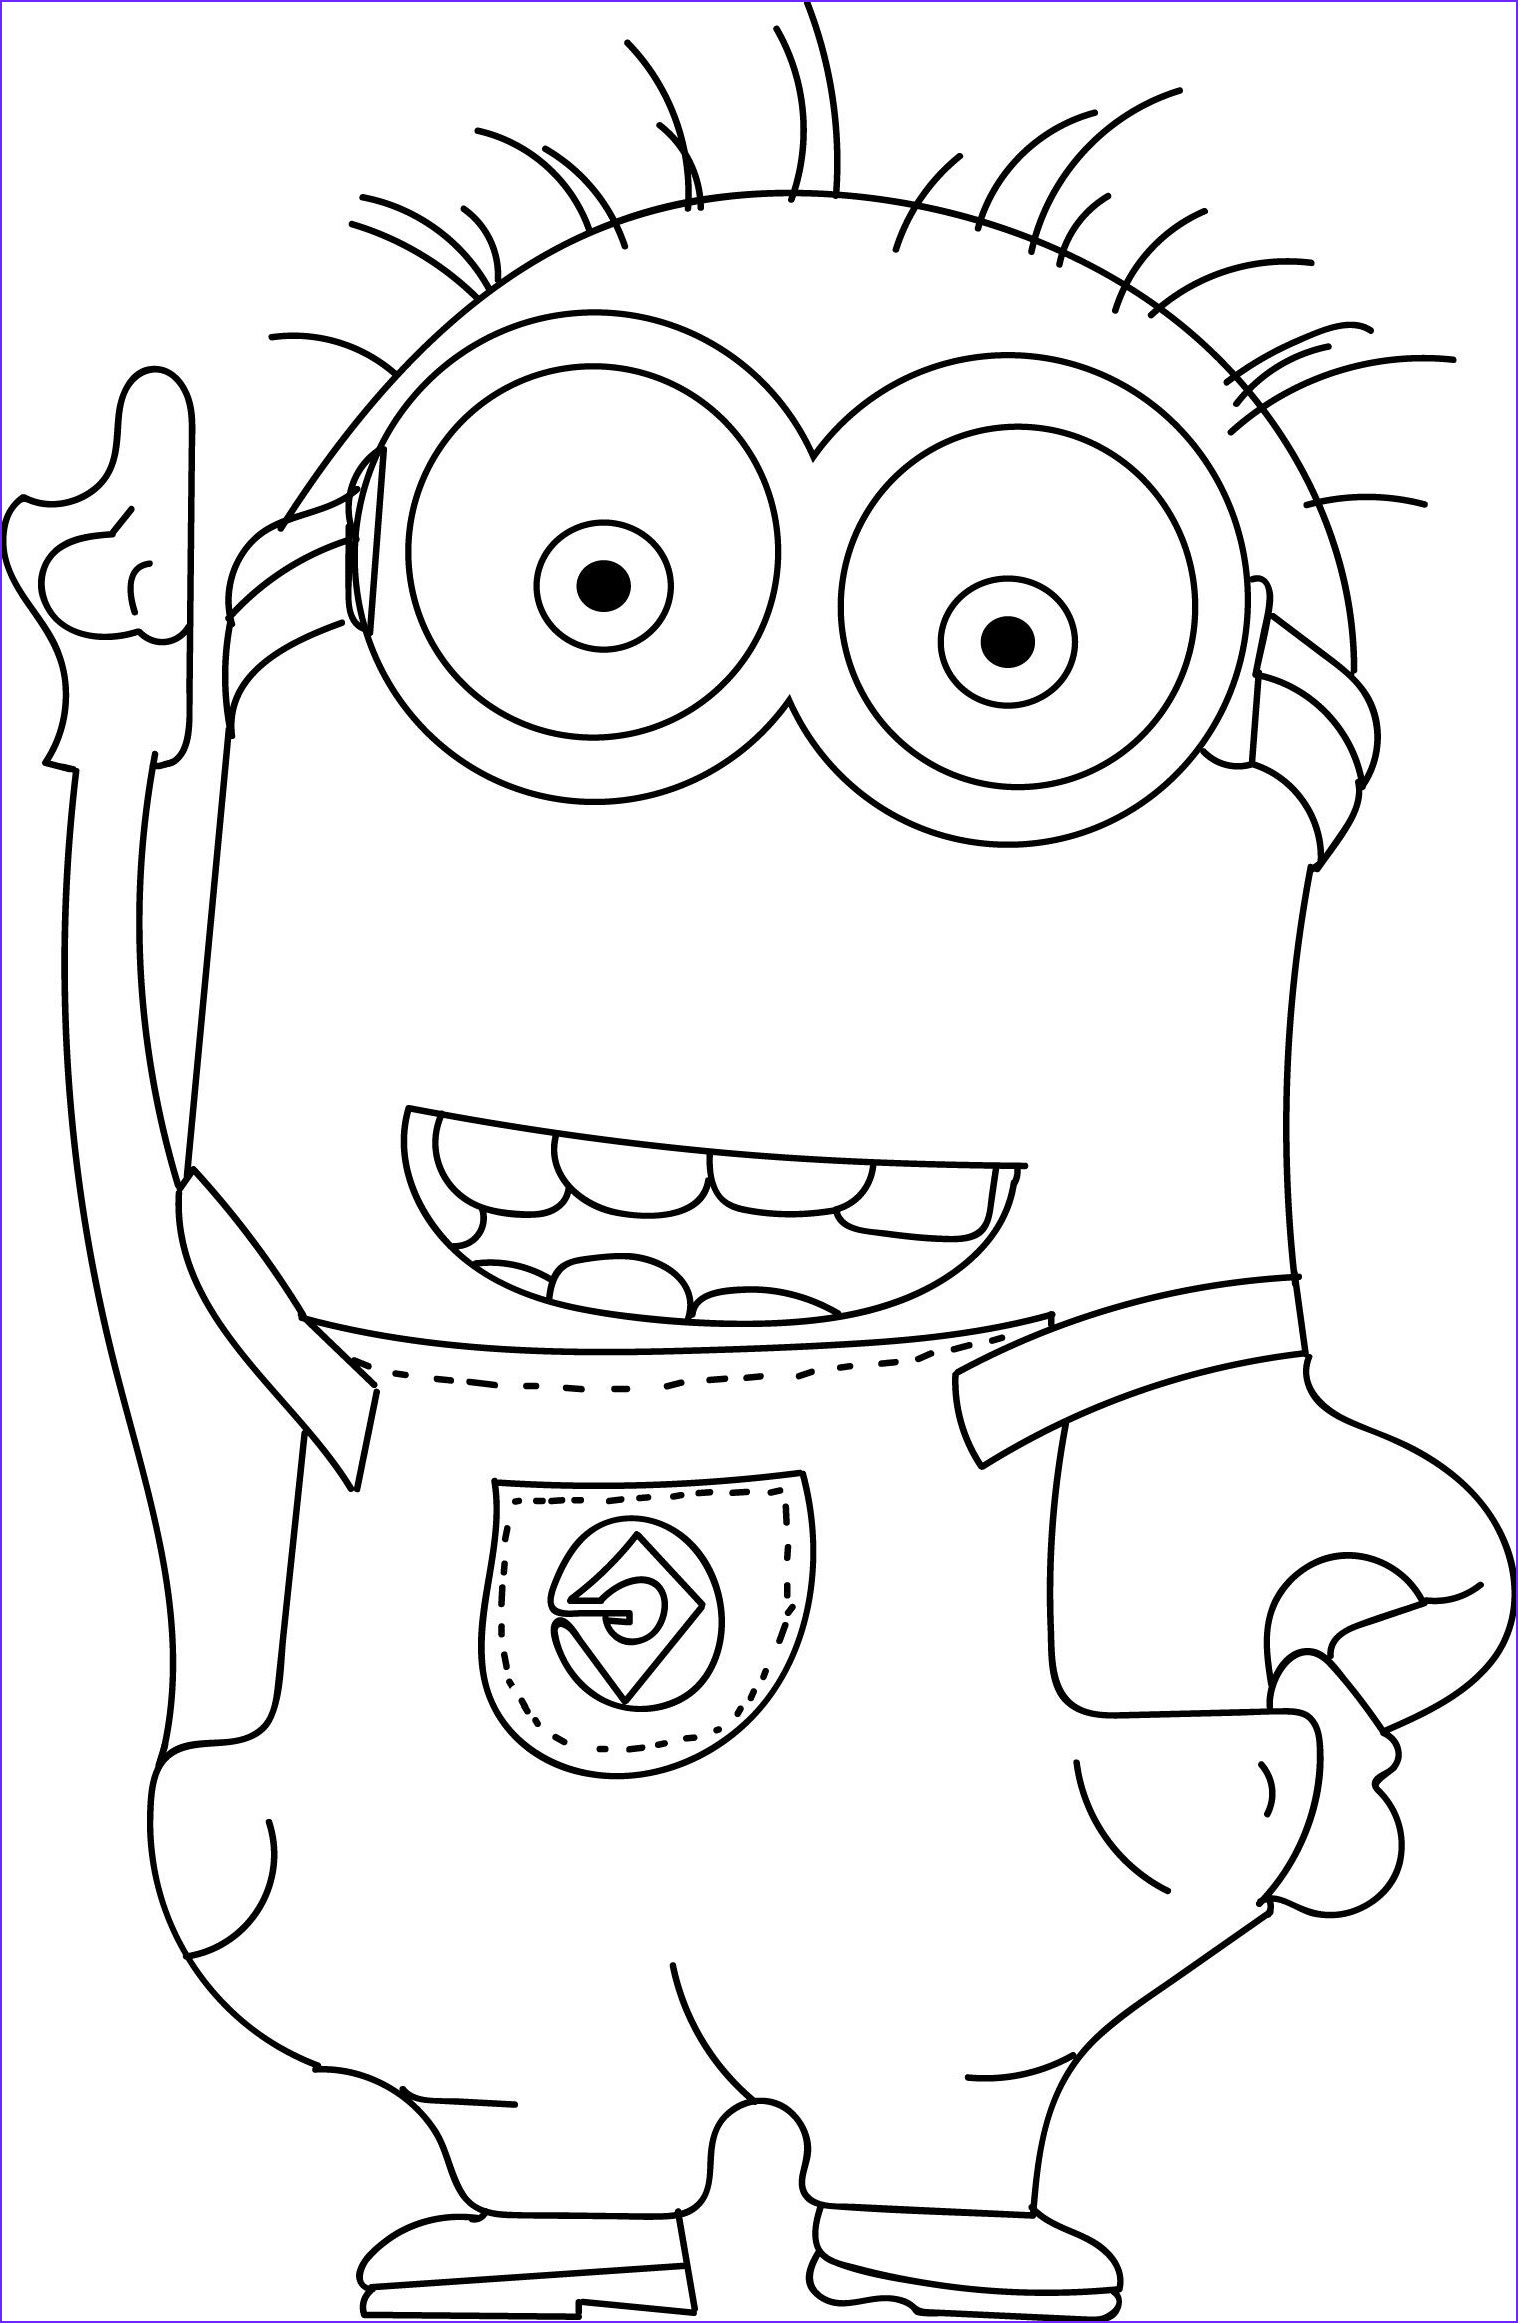 Minion Coloring Pages Pdf New Collection Cool Minions Coloring Pages Check More at